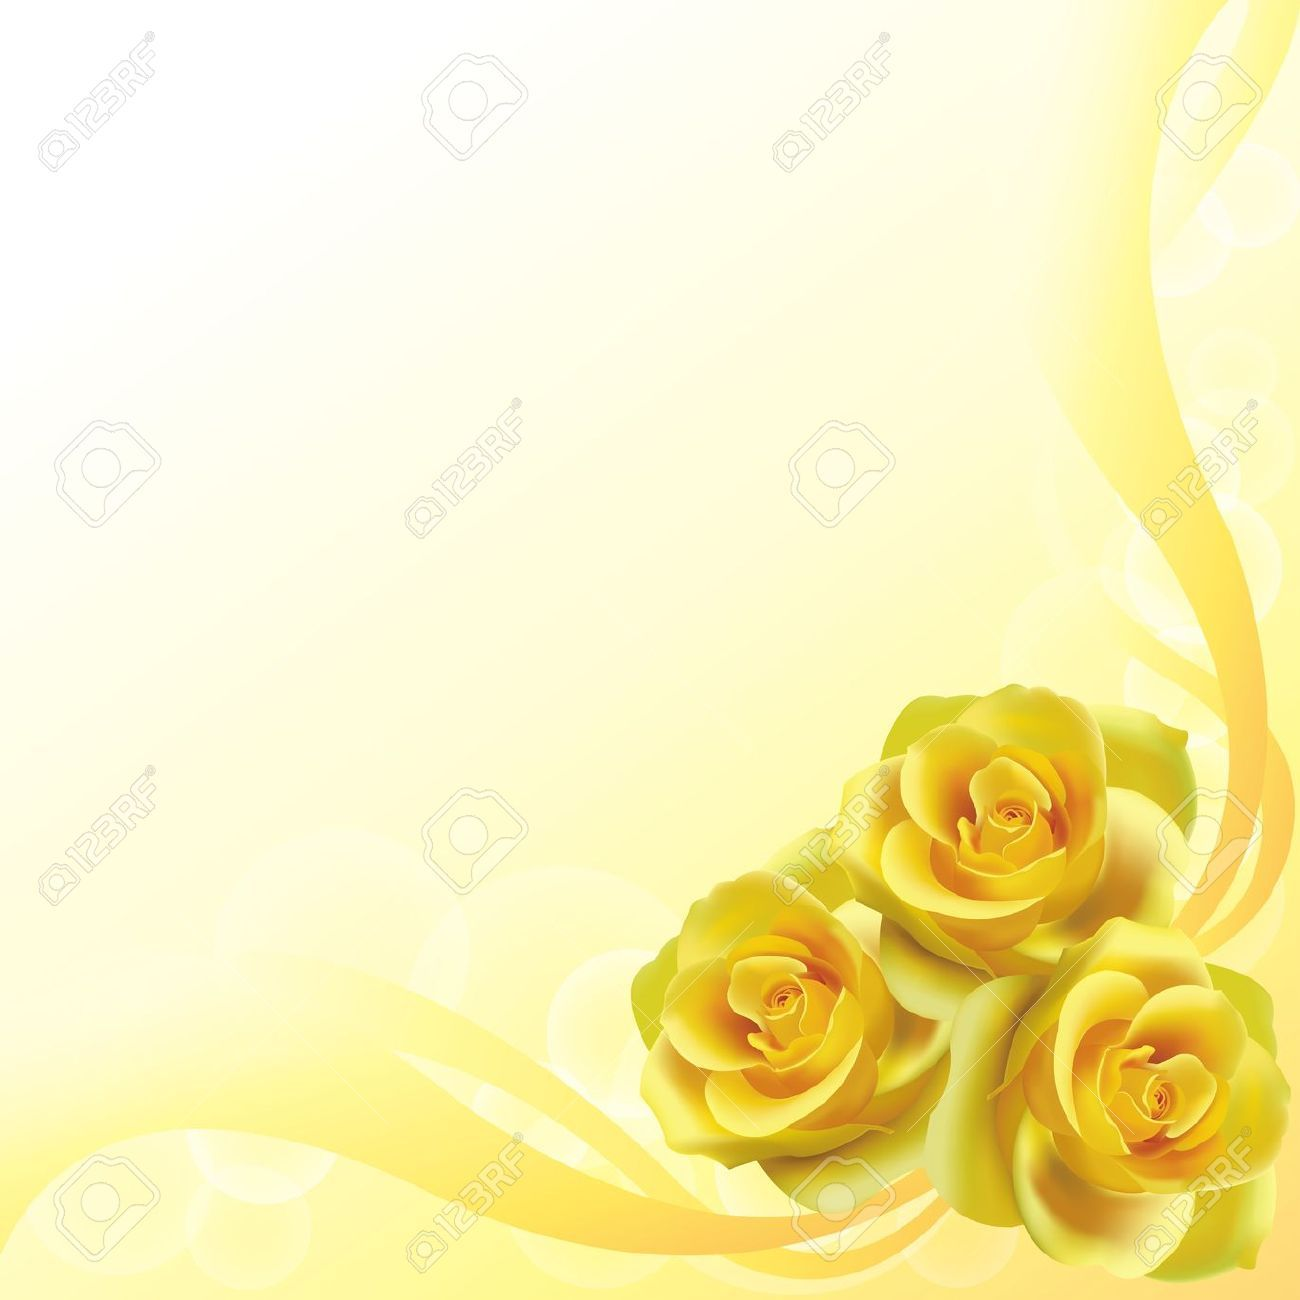 Yellow Rose Backgrounds Wallpaper in 2019.